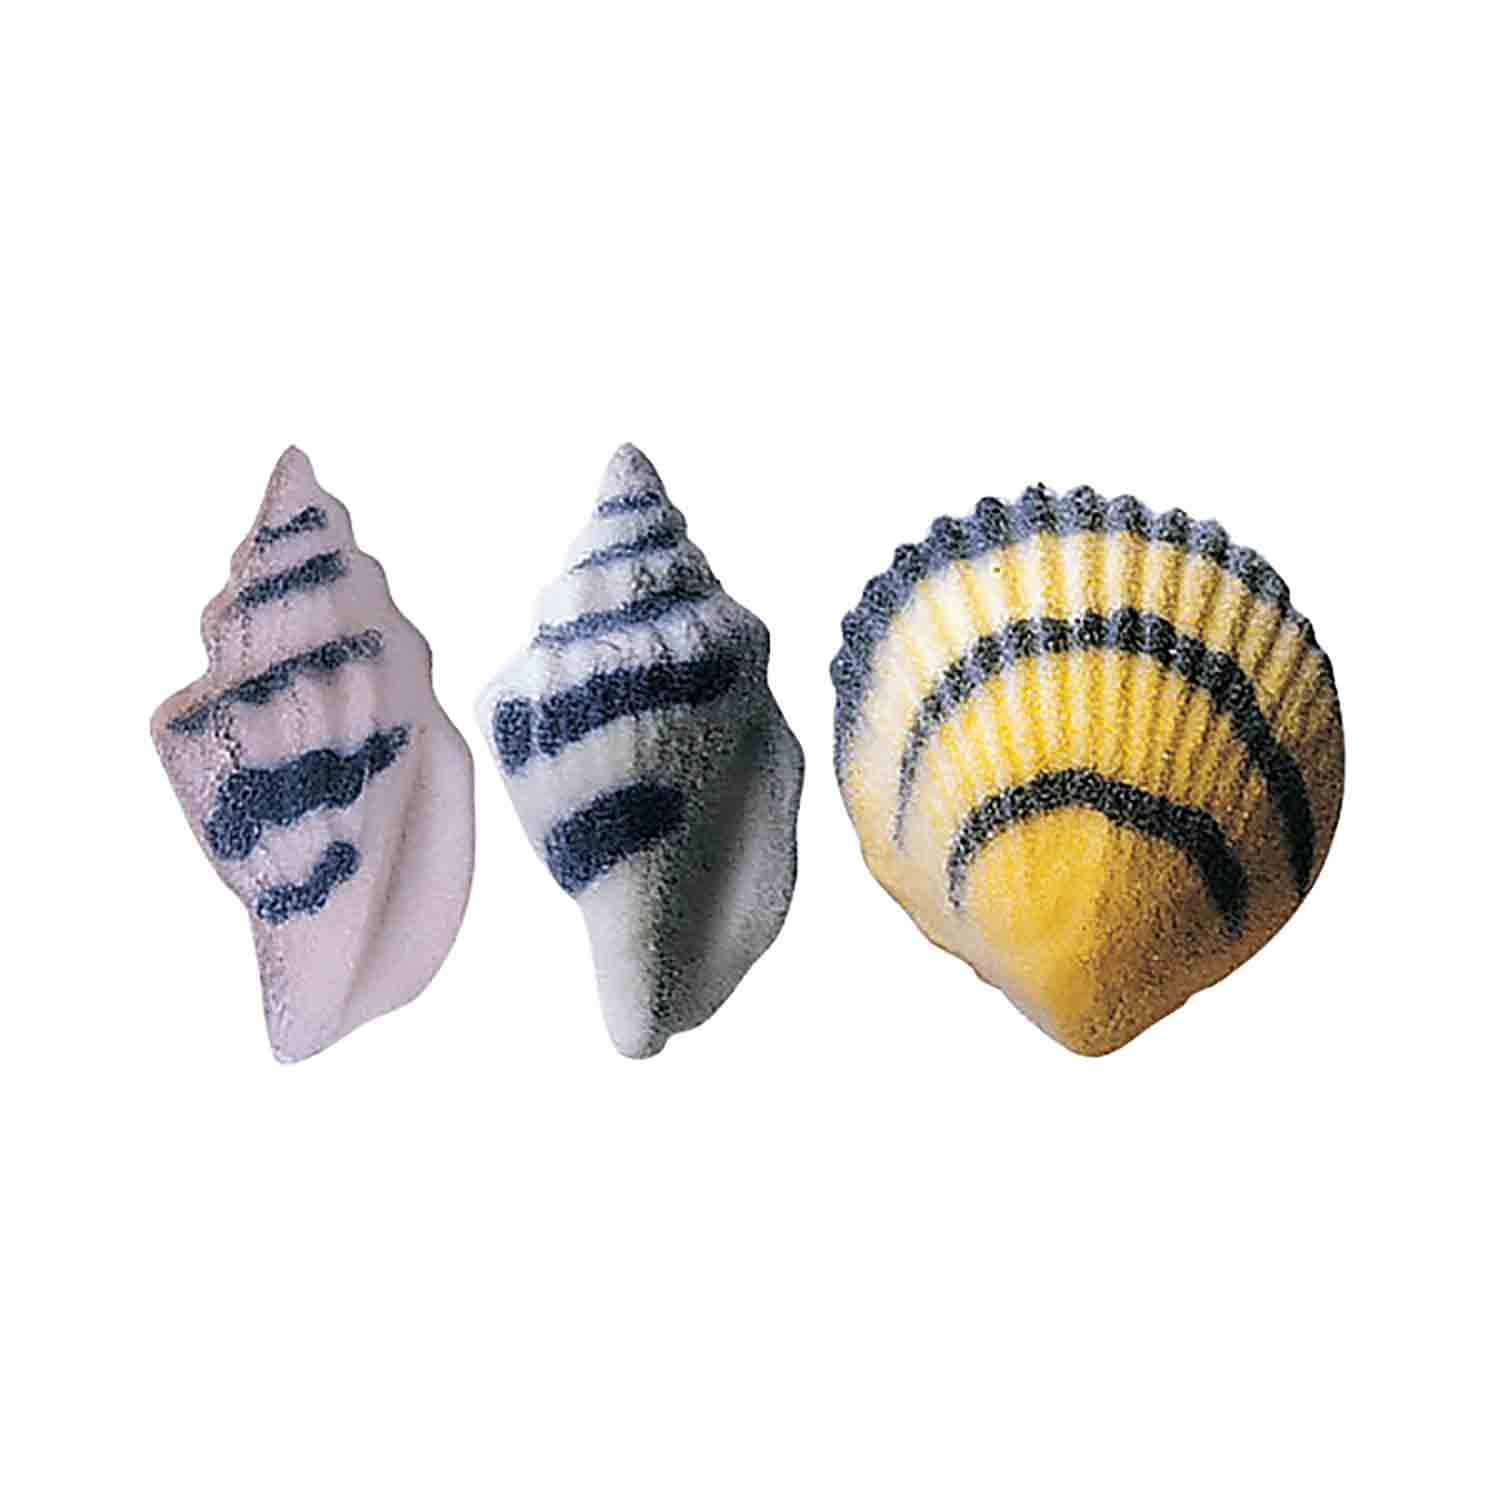 Dec-Ons® Molded Sugar - Seashells